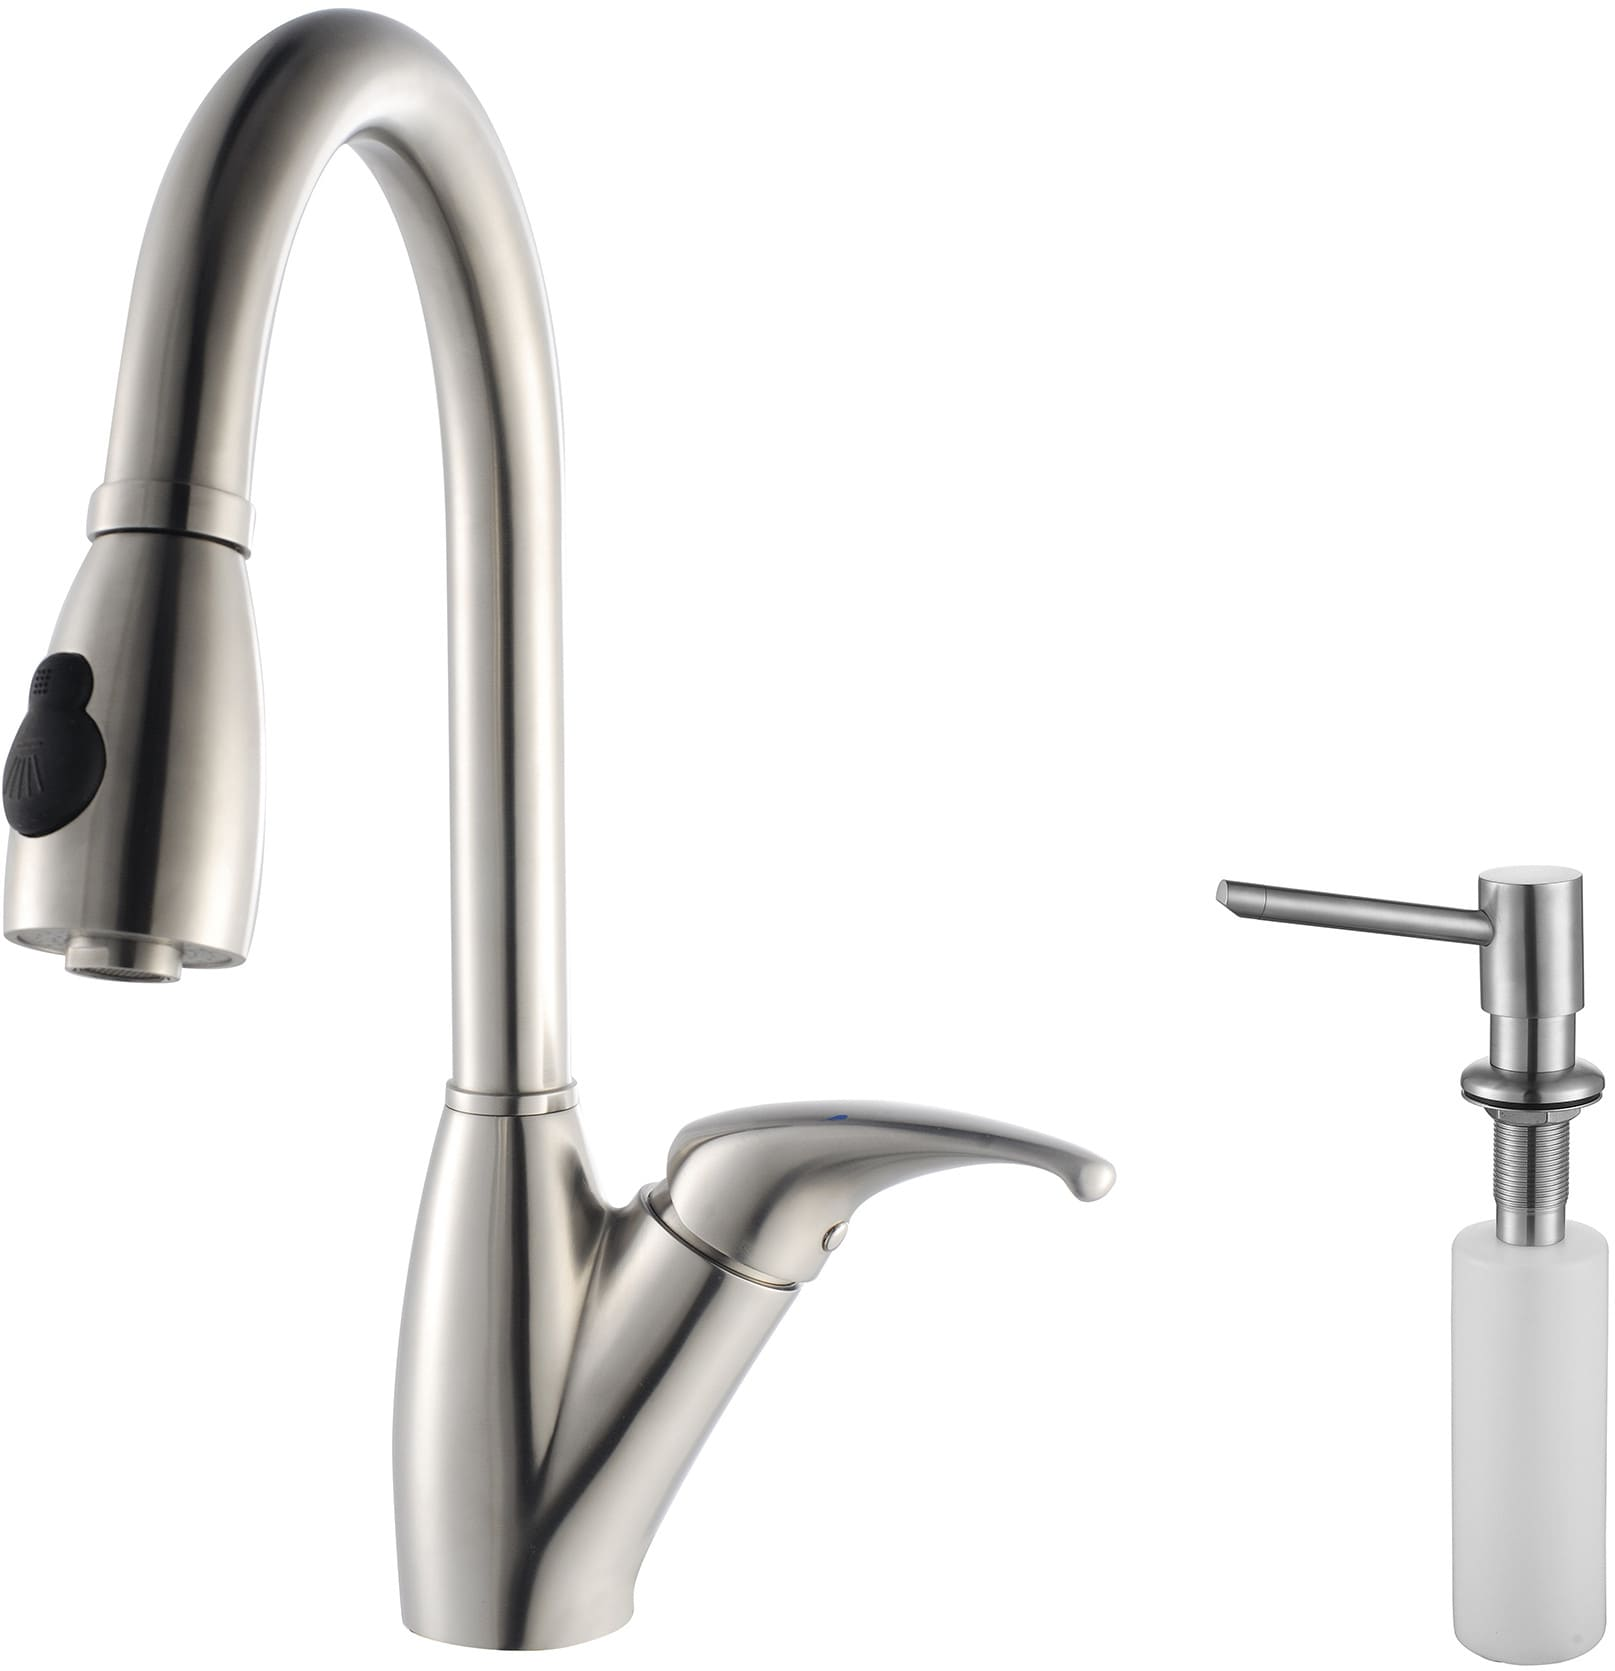 Kraus KPF2120SD20 Single Lever Pull Out Faucet with 9 Inch Spout